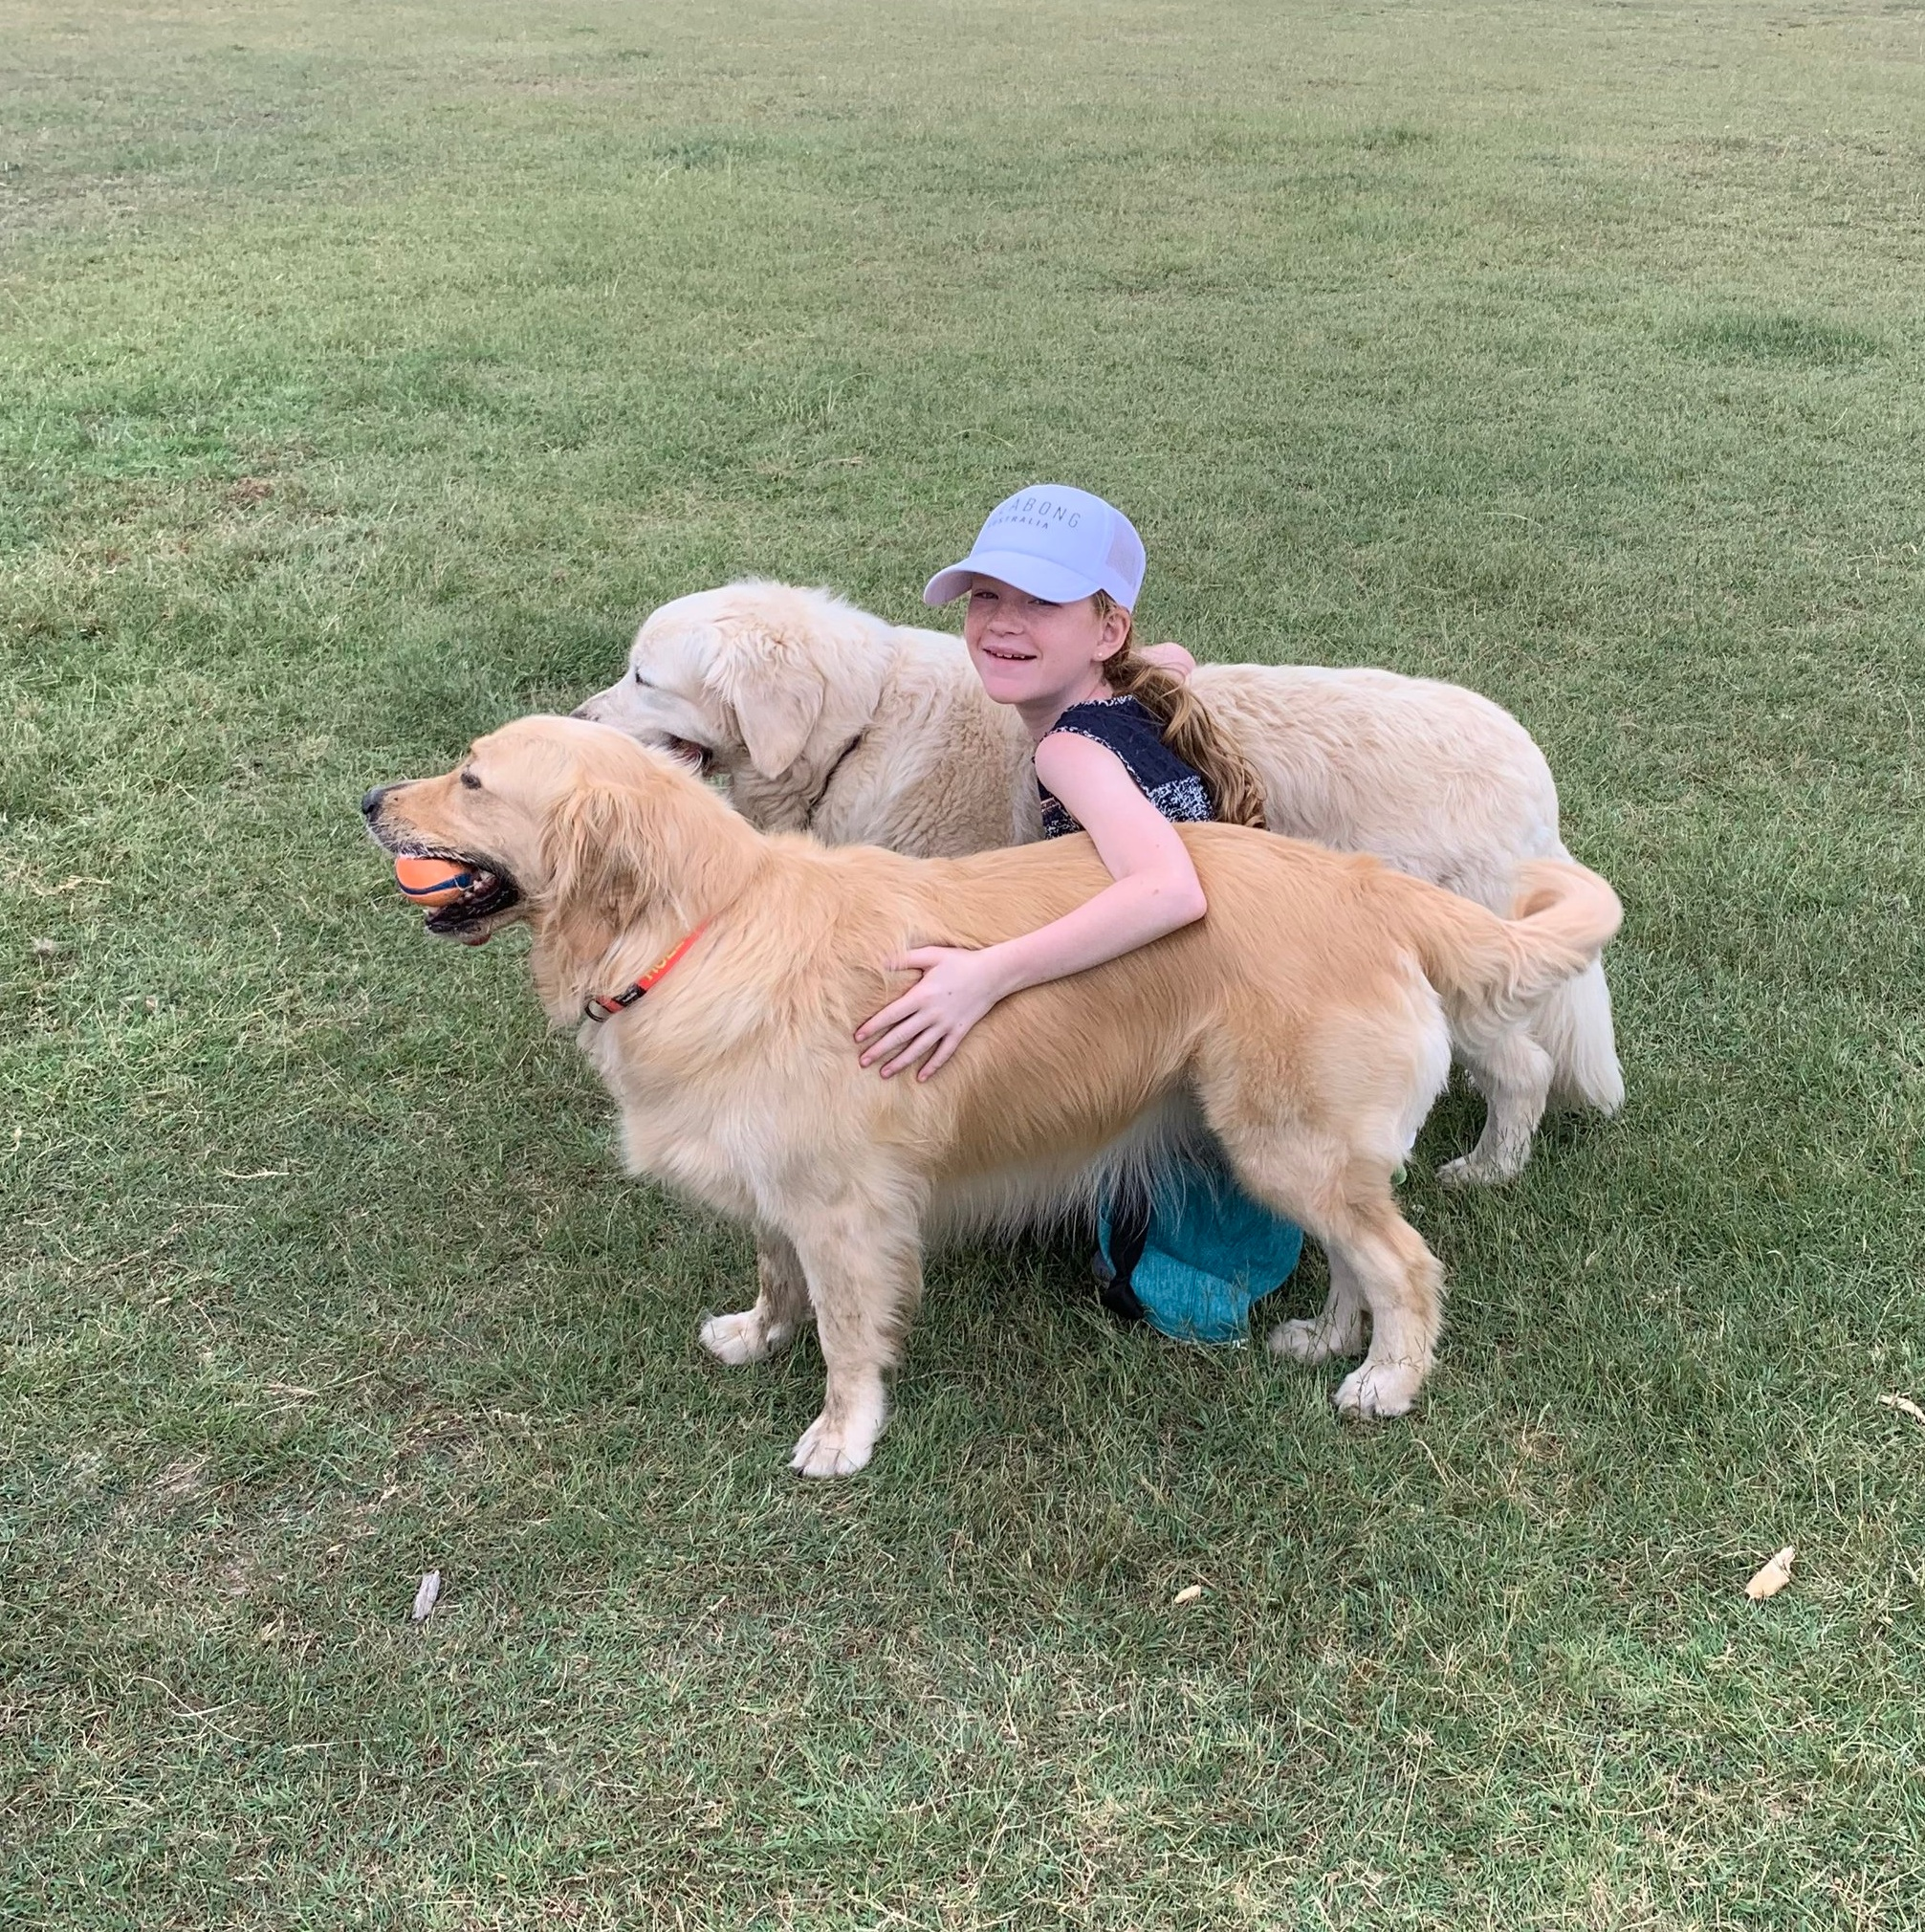 Sometimes you have to find some golden retrievers in the park because you miss yours!!